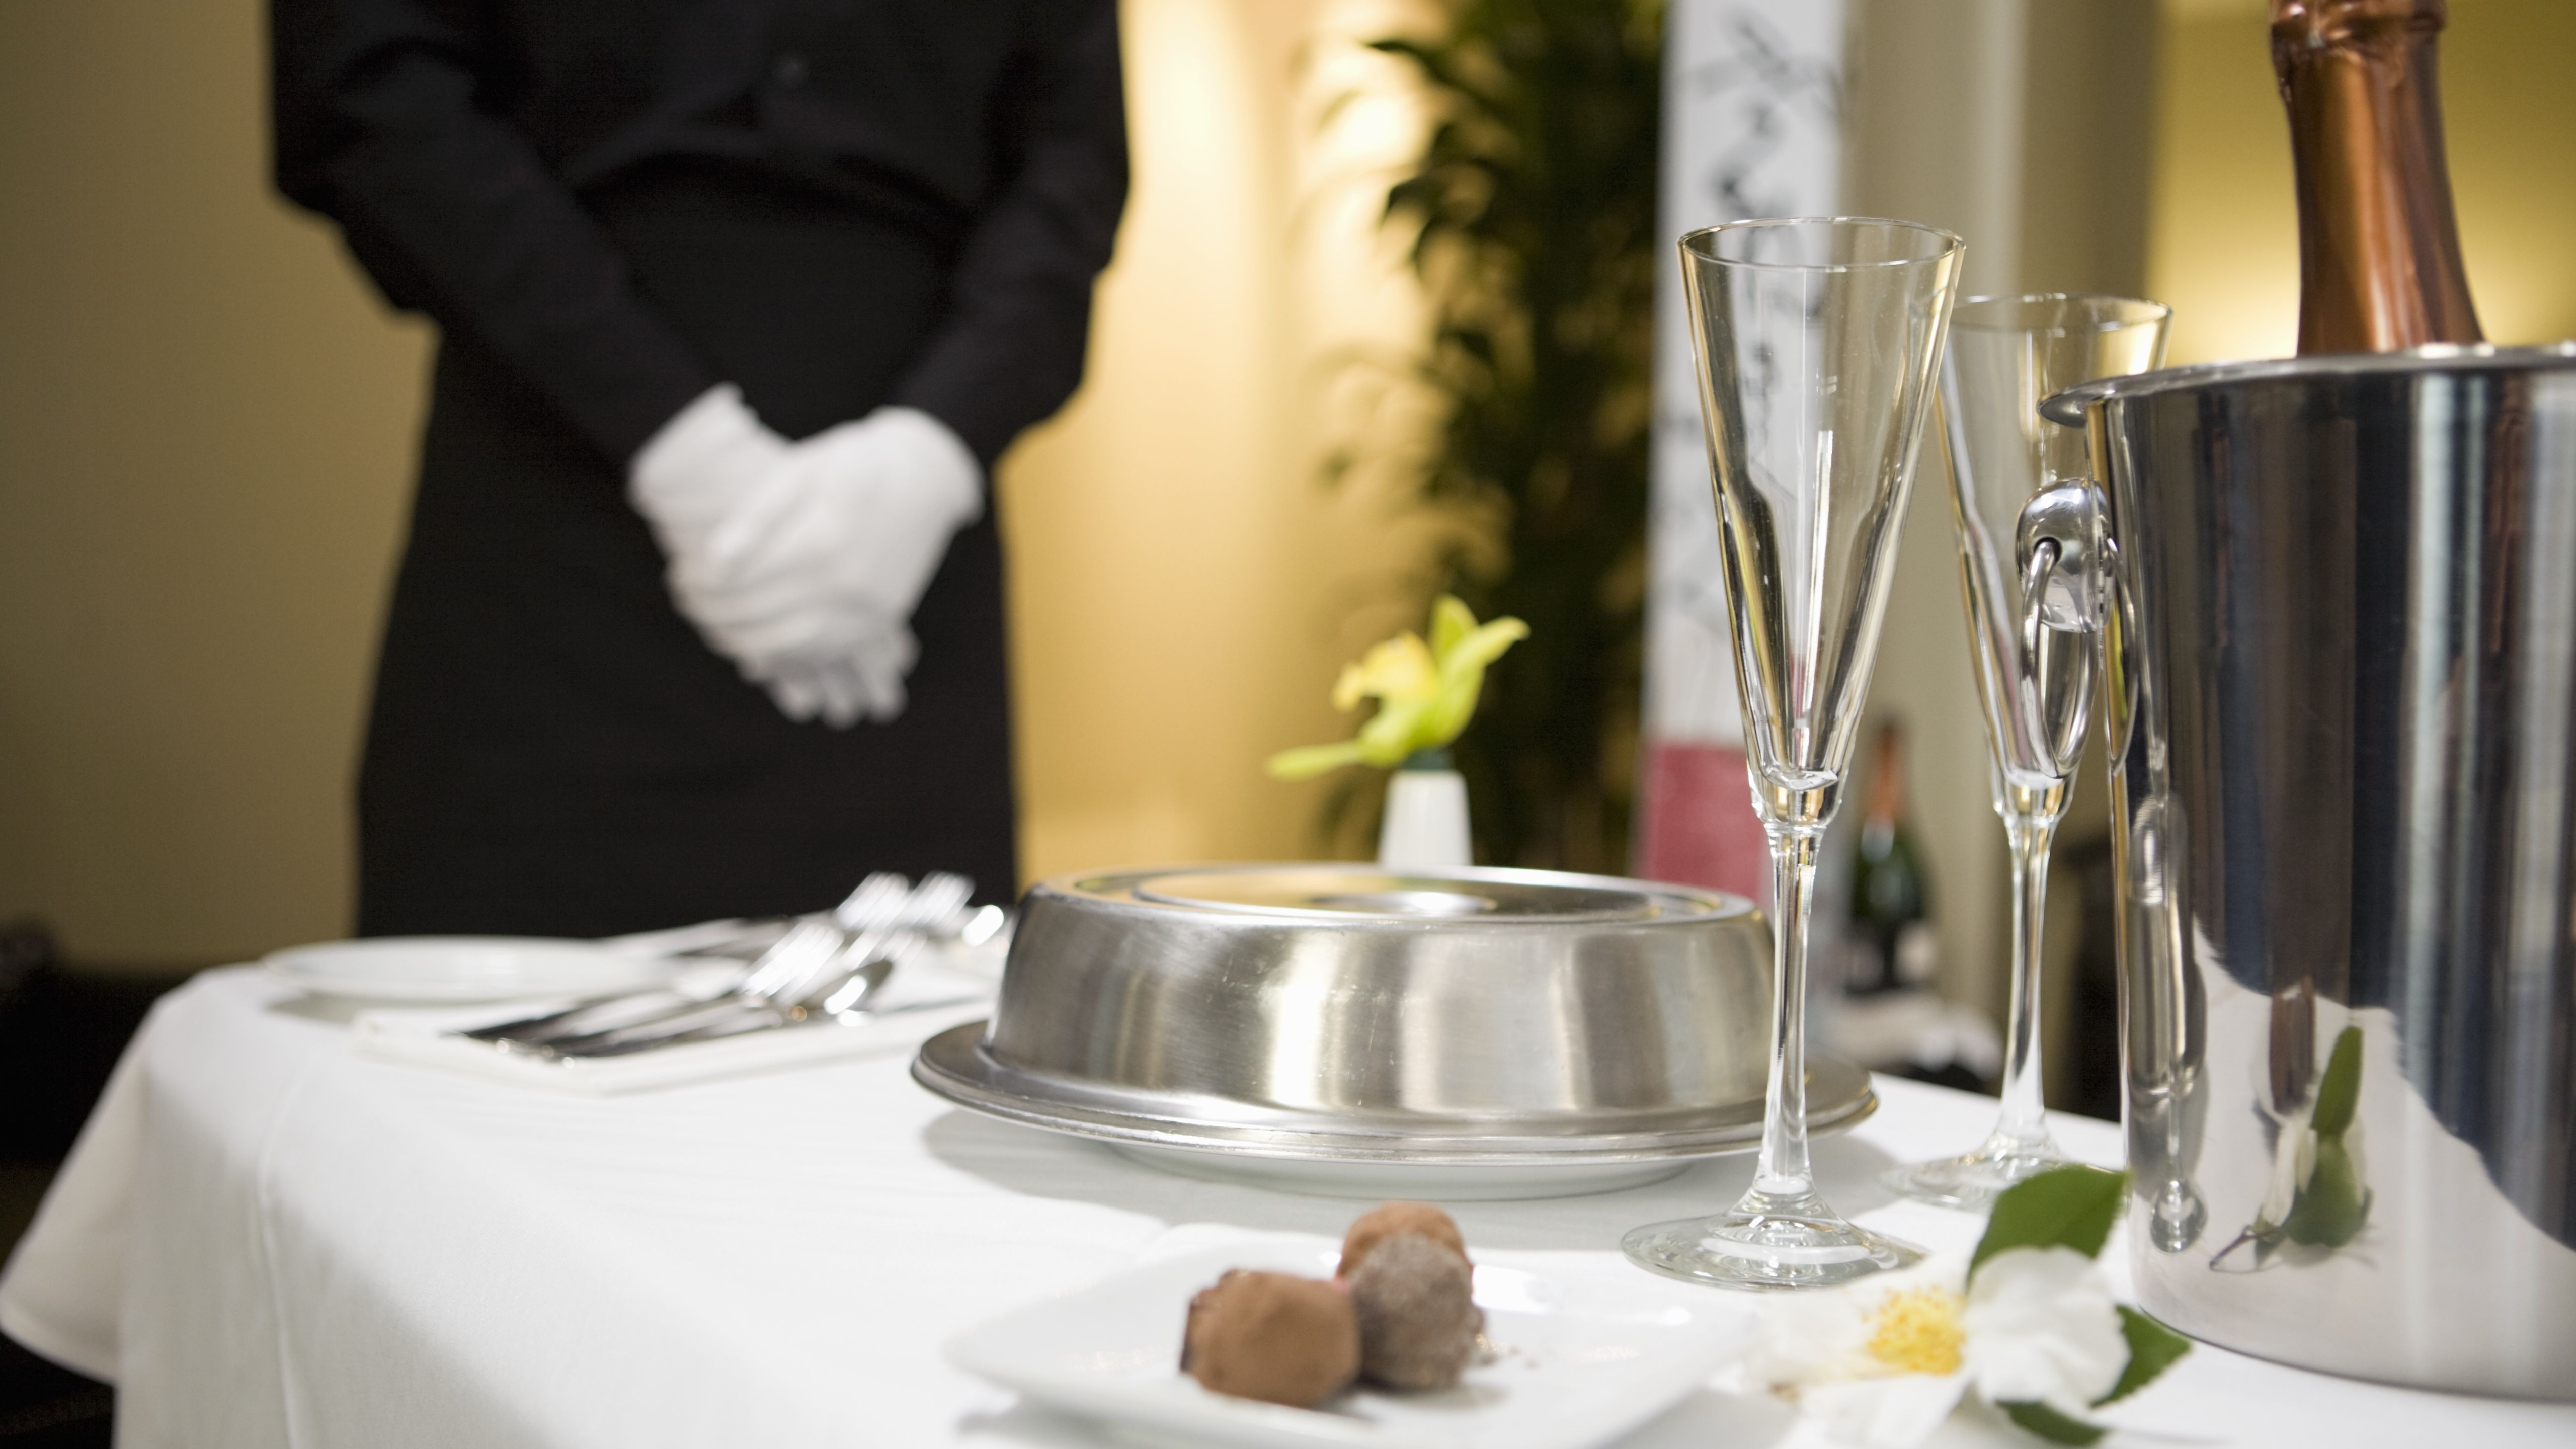 Tipping at Hotels and Resorts: Who, When, and How Much